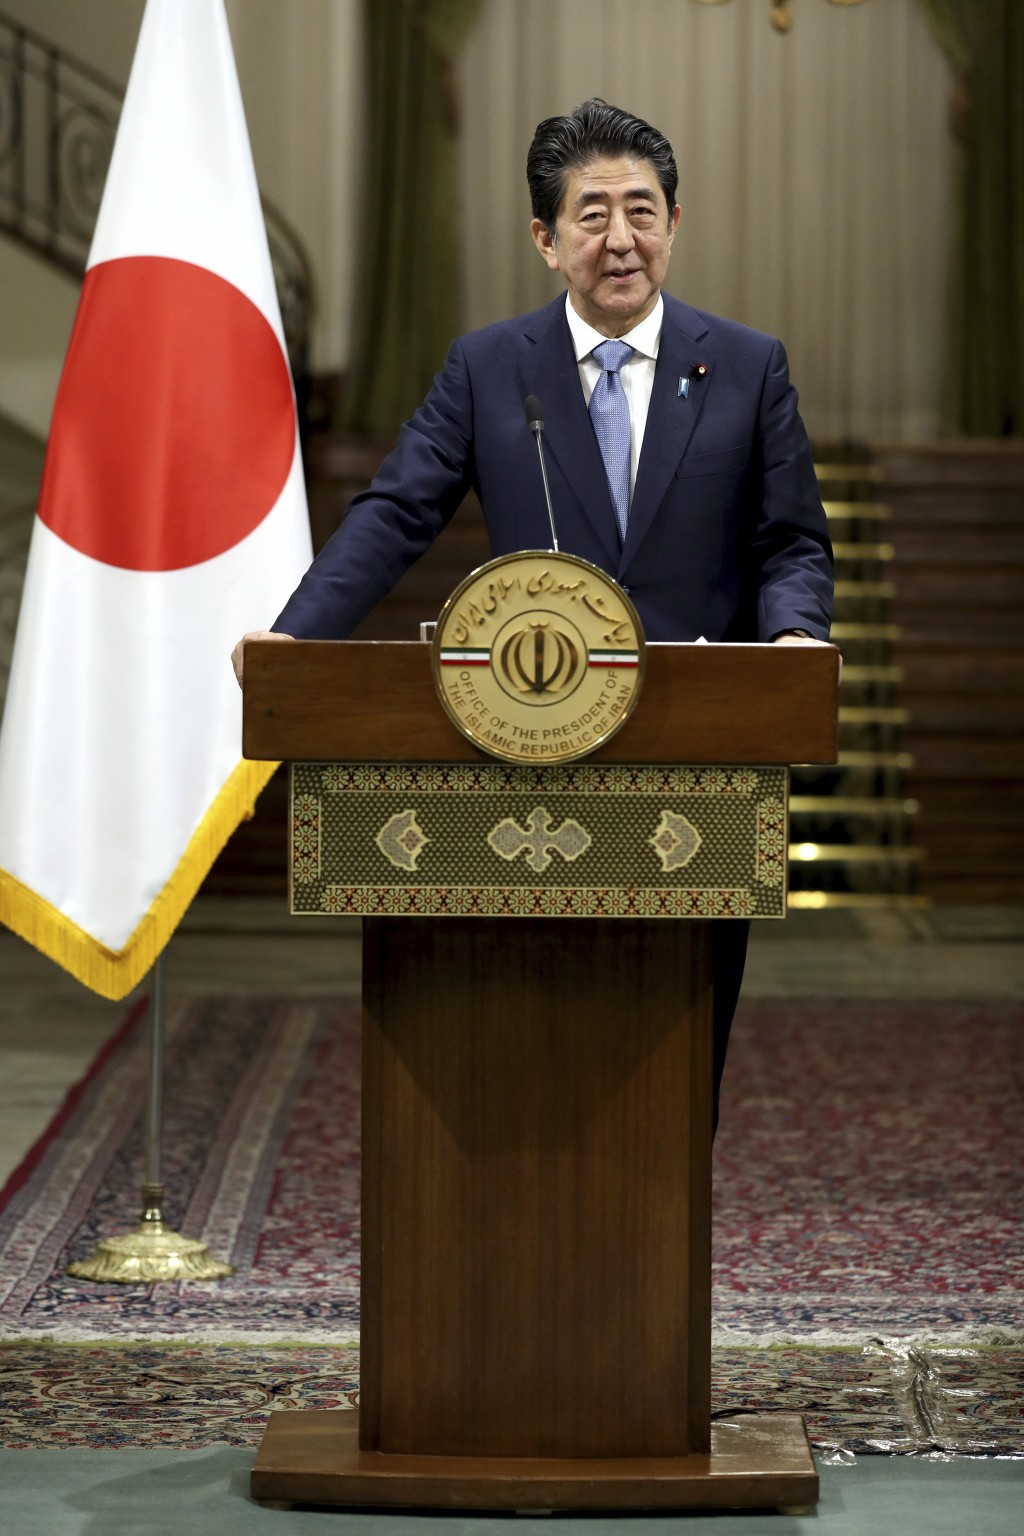 Japanese Prime Minister Shinzo Abe speaks with media during a joint press conference with Iranian President Hassan Rouhani, after their meeting at the